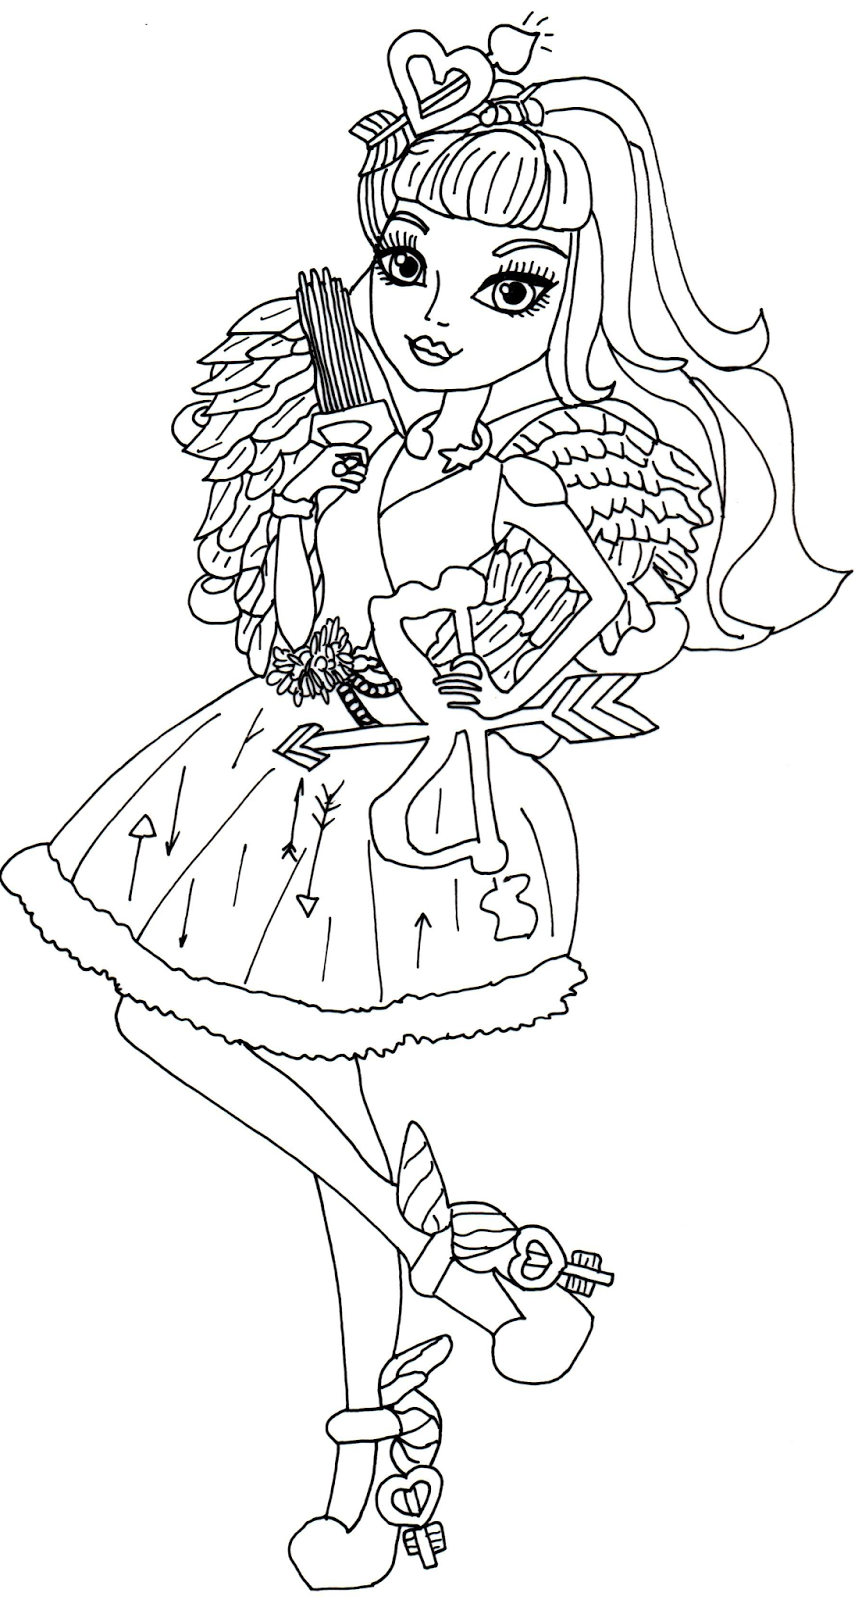 Free Printable Ever After High Coloring Pages: Briar Beauty Way ... | 1600x862